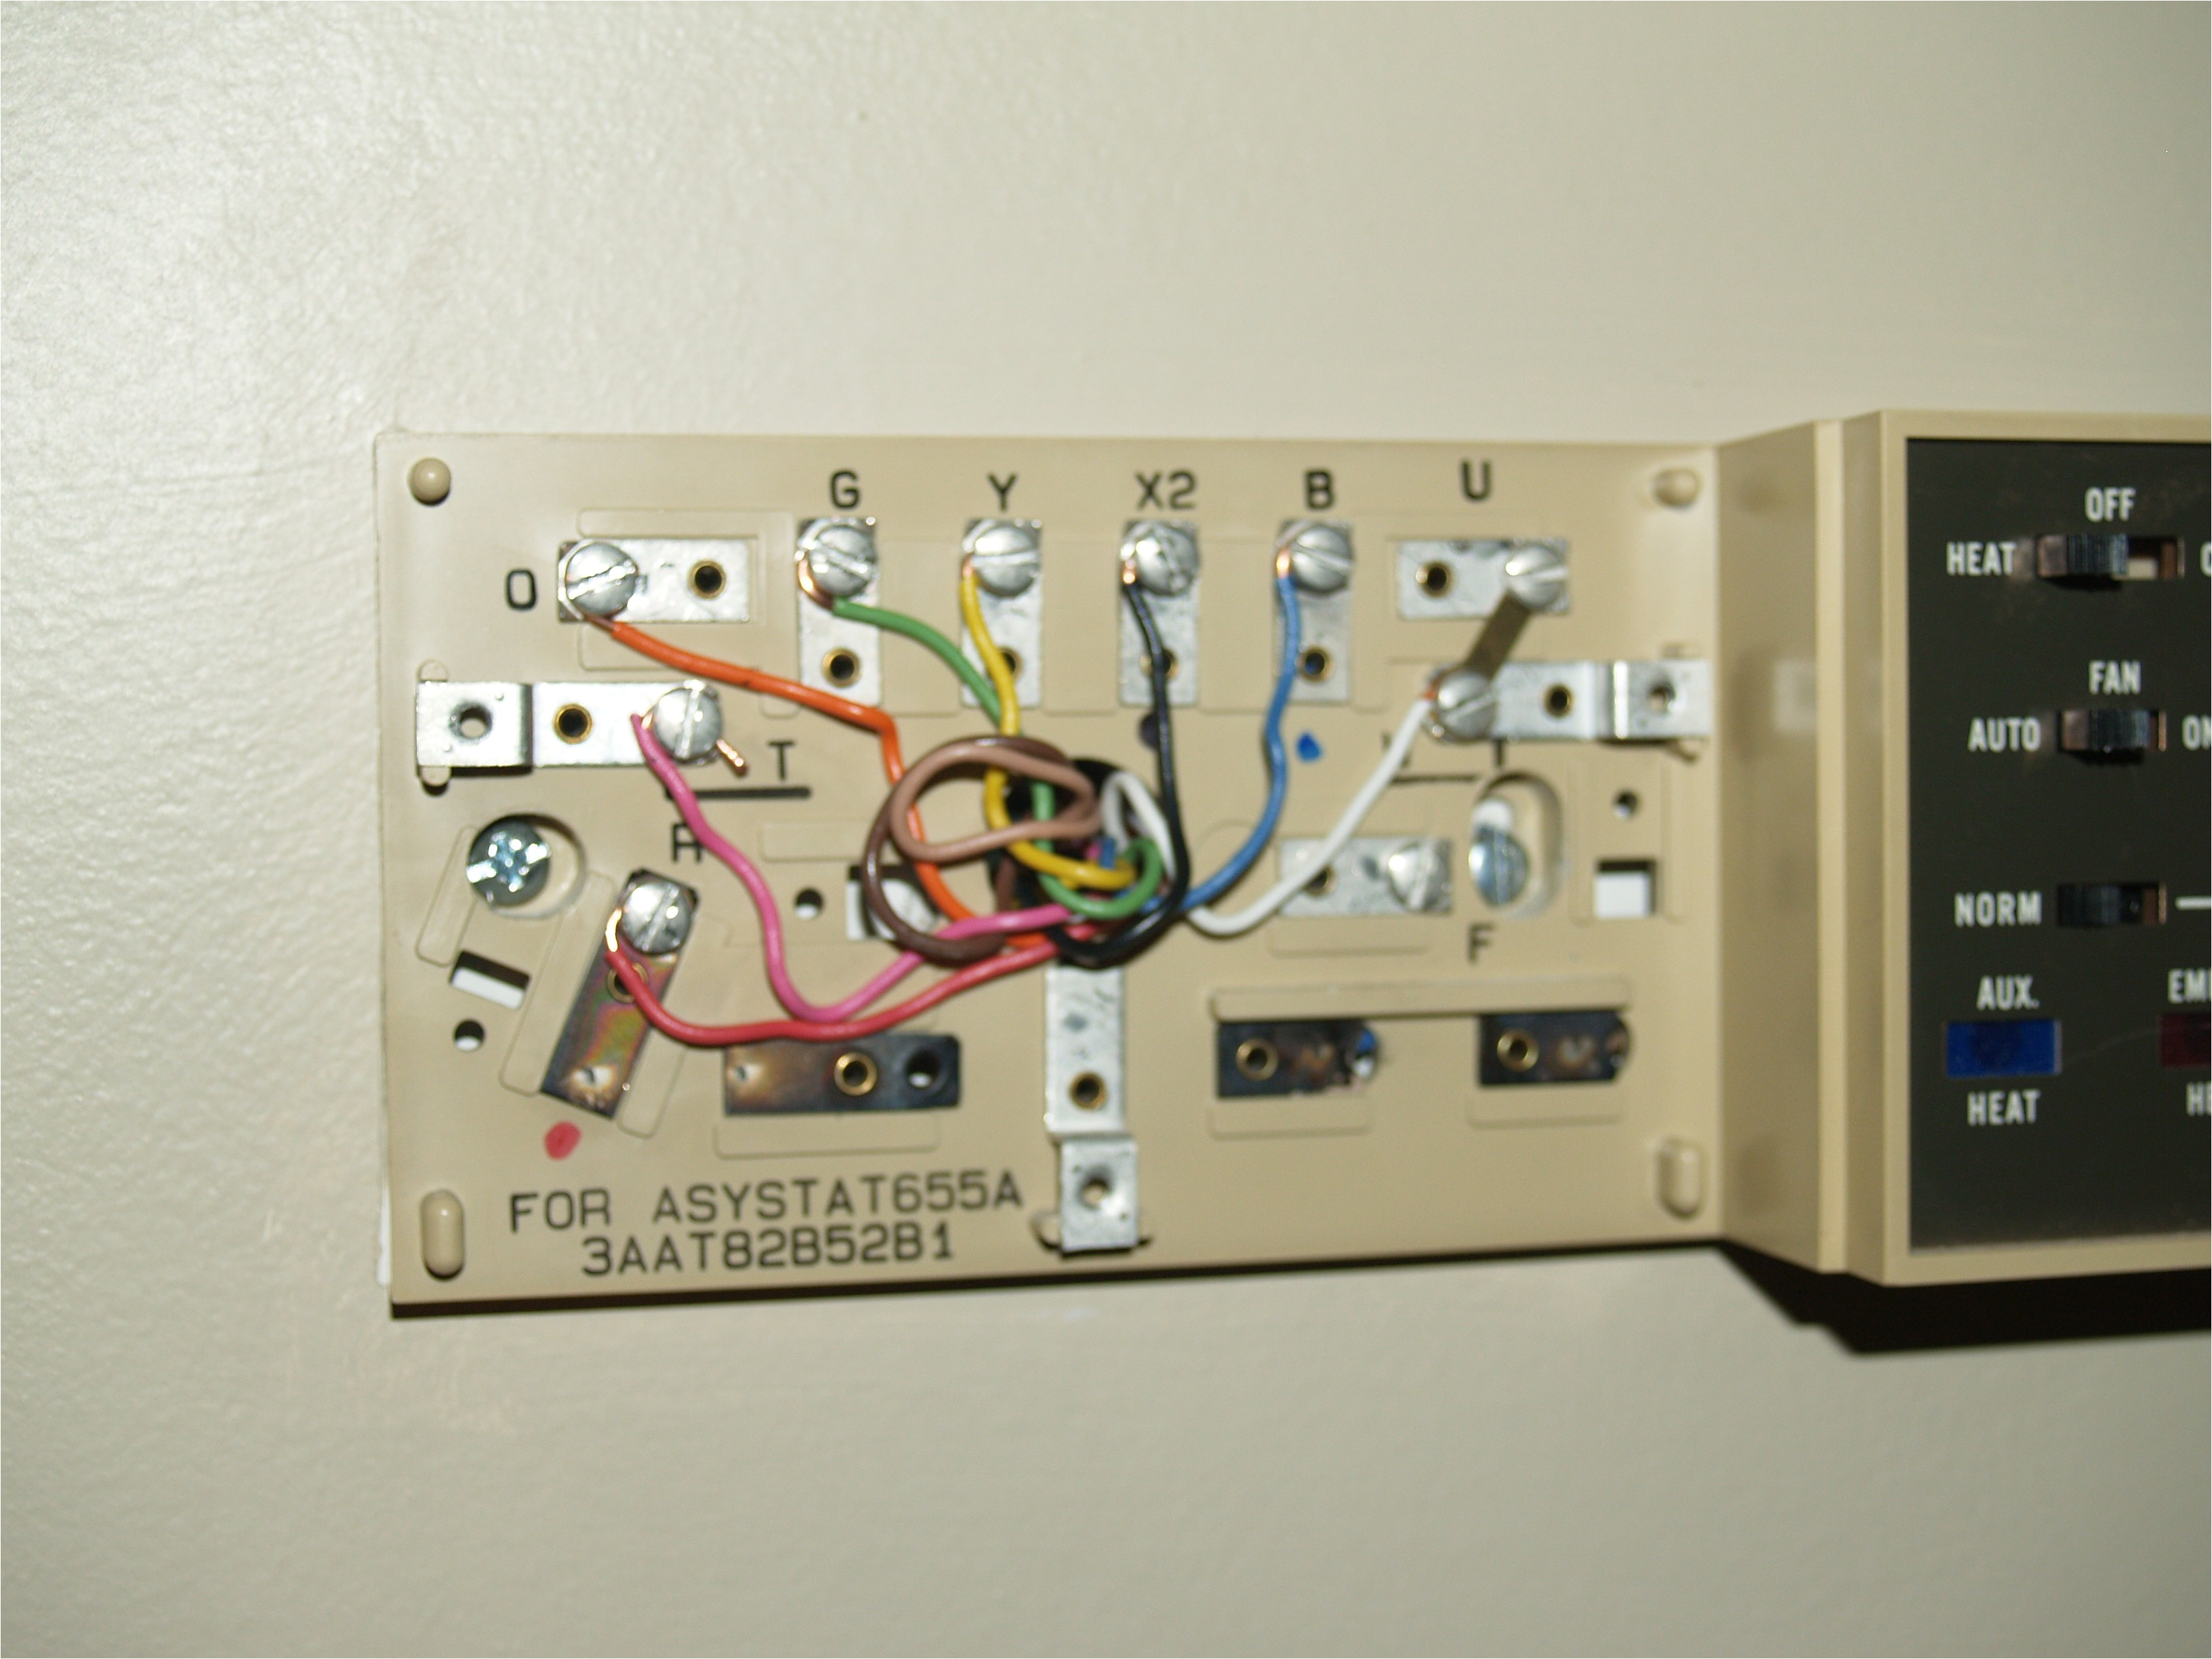 i have a honeywell thermostat asystat655a and i want to replace it with a new honeywell vision pro 8000 th8320u1008 i